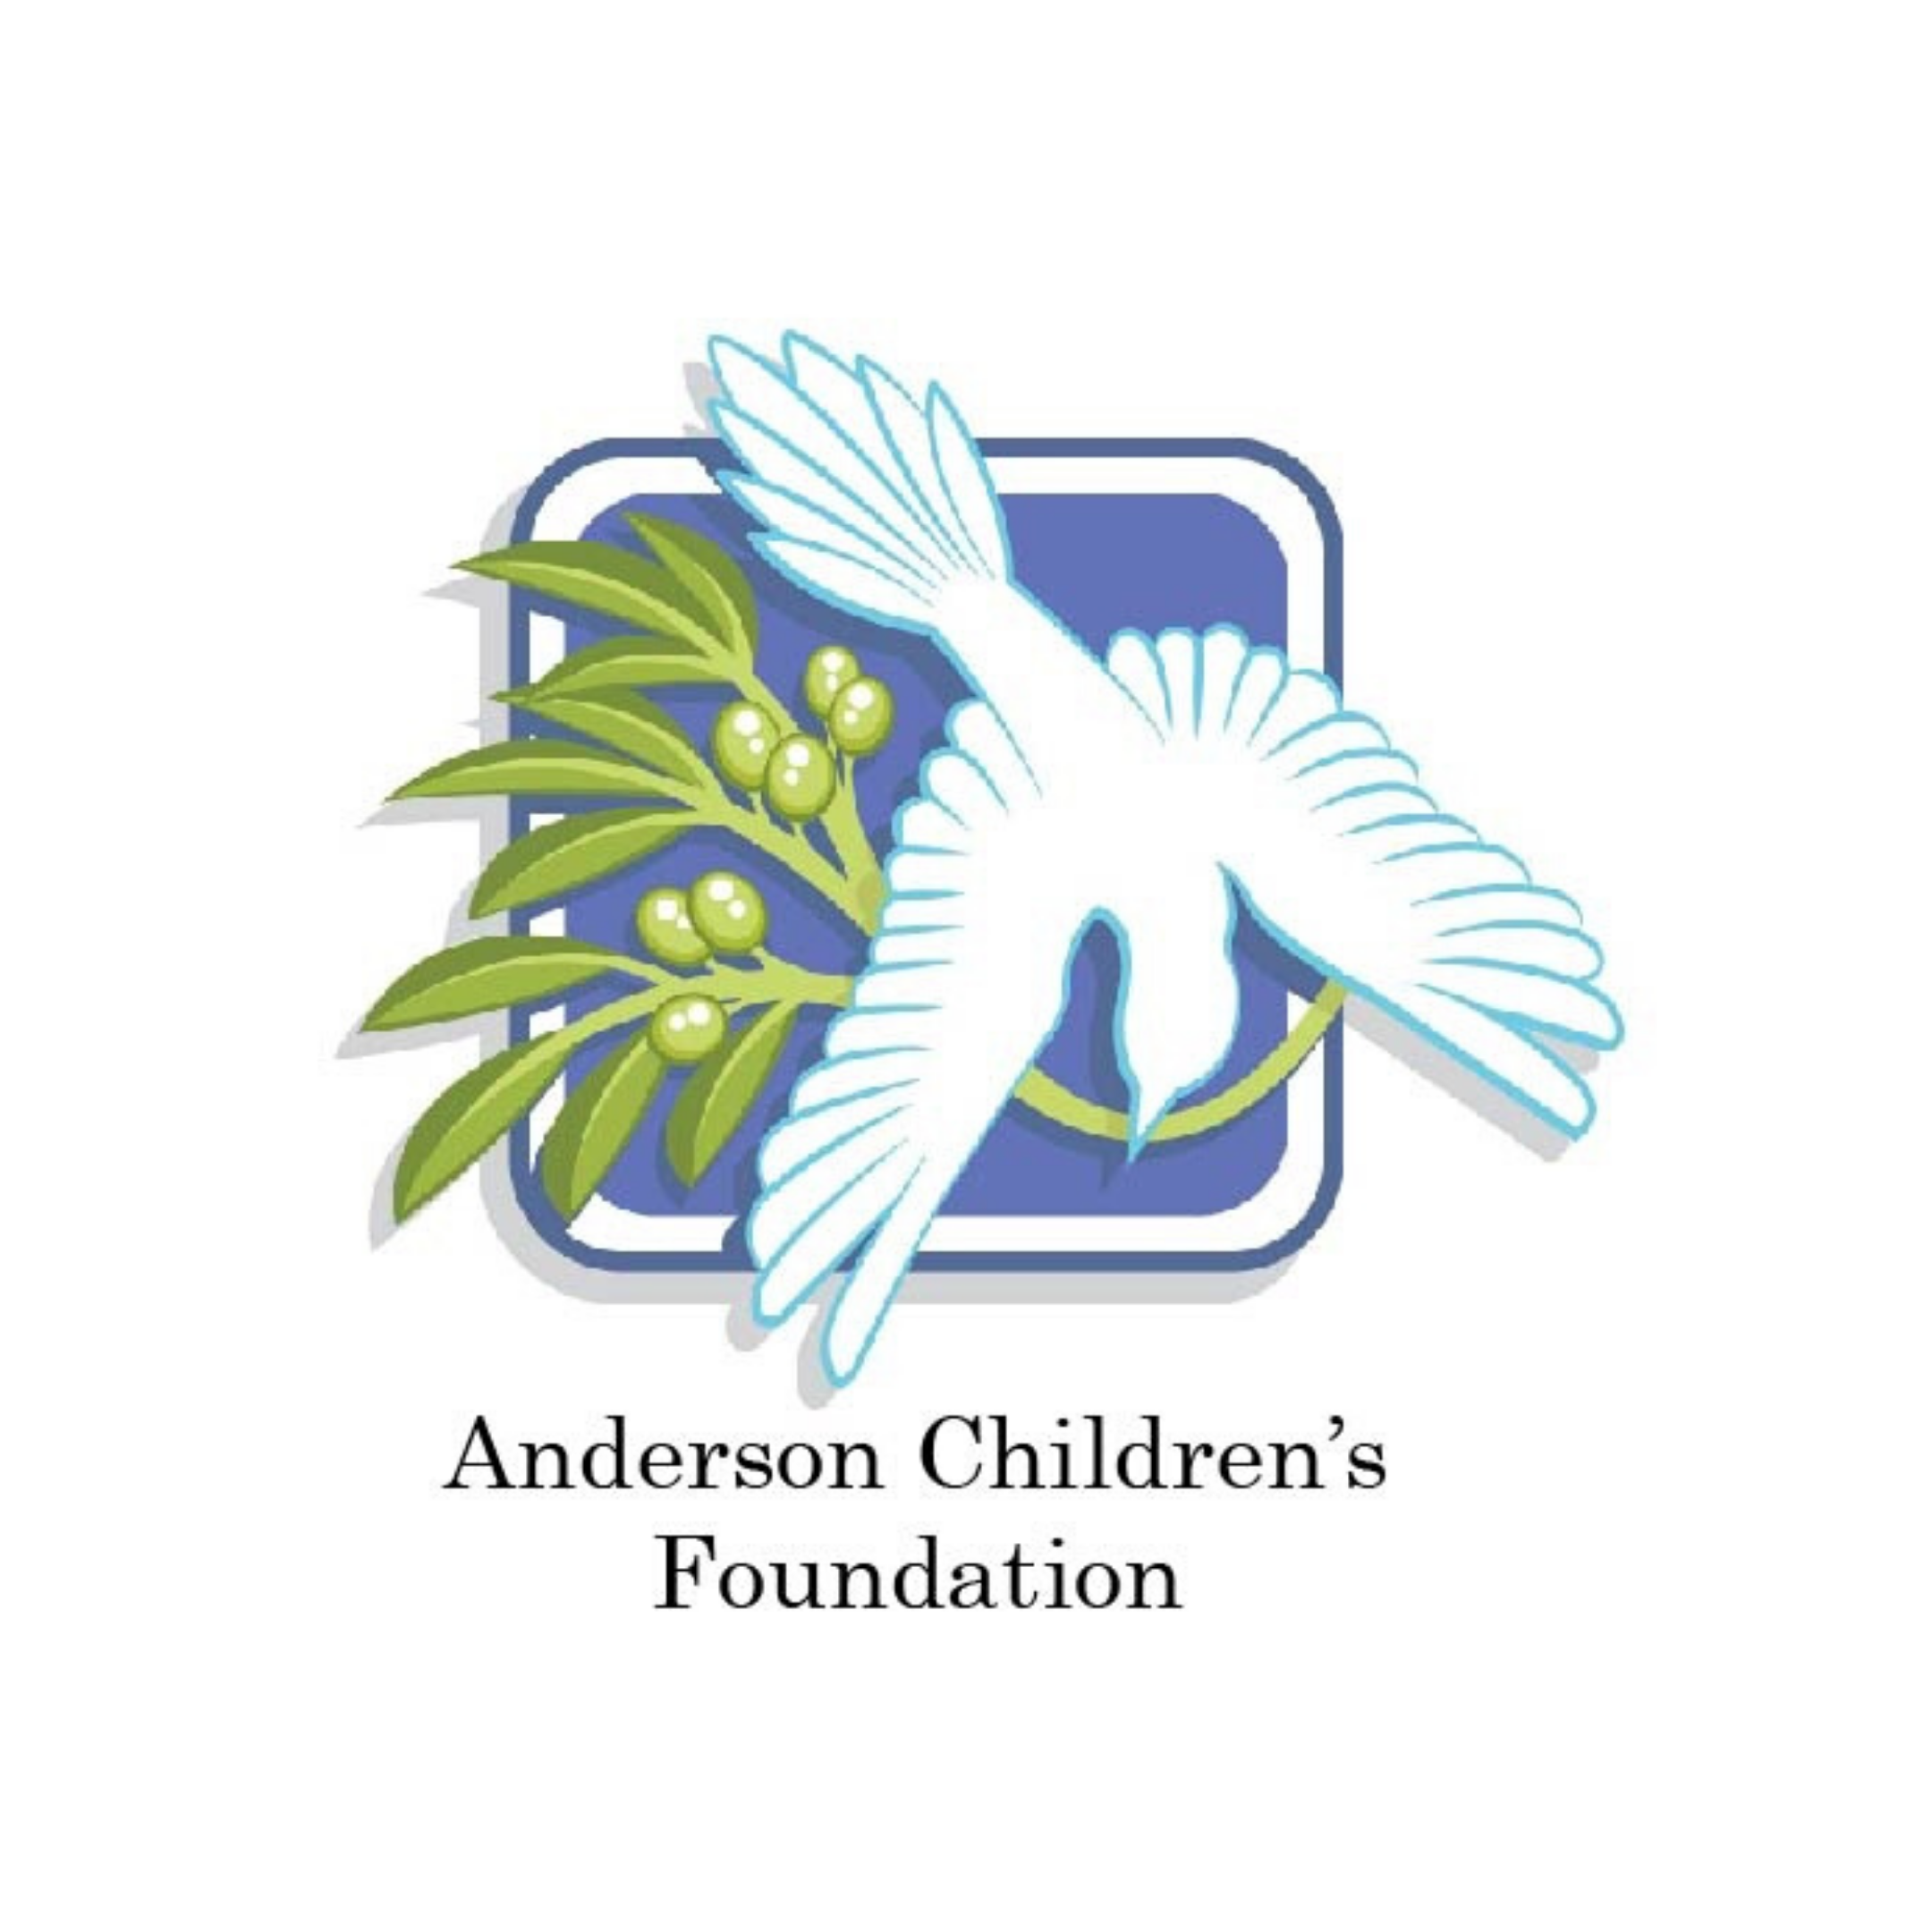 Anderson Children's Foundation